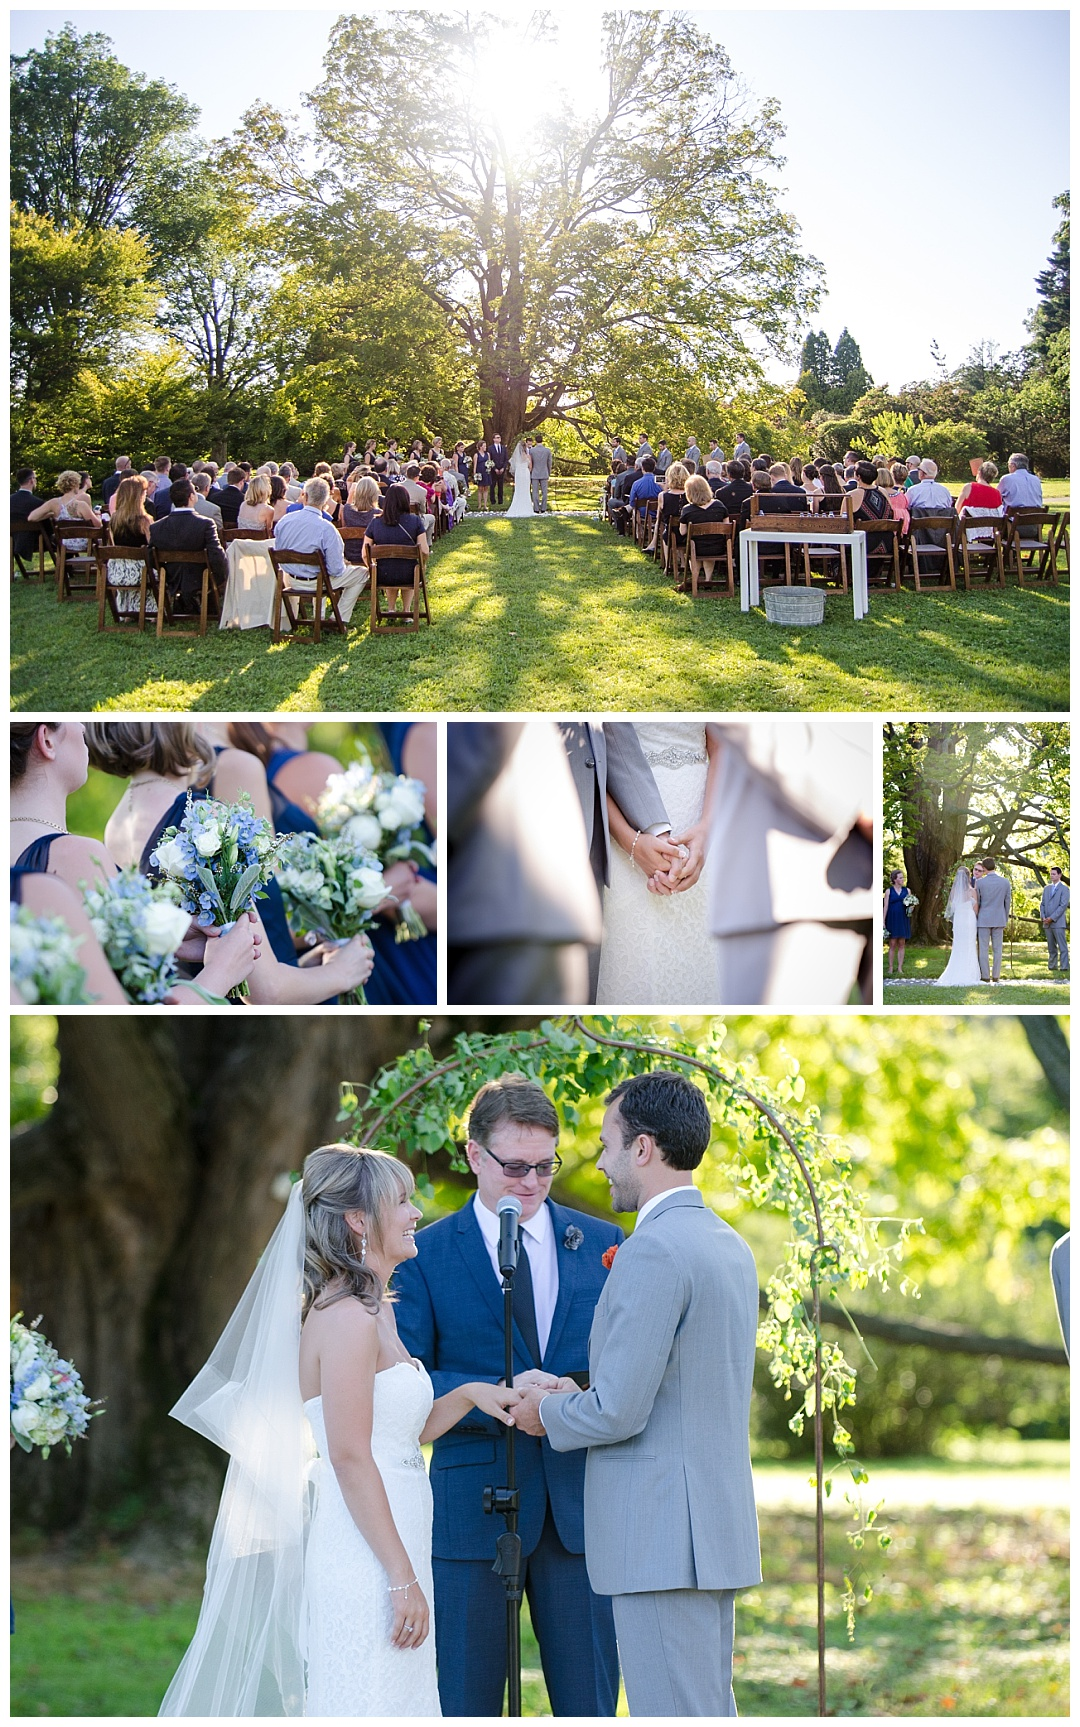 Cylburn Arboretum Wedding Photos | Aaron Haslinger Photography